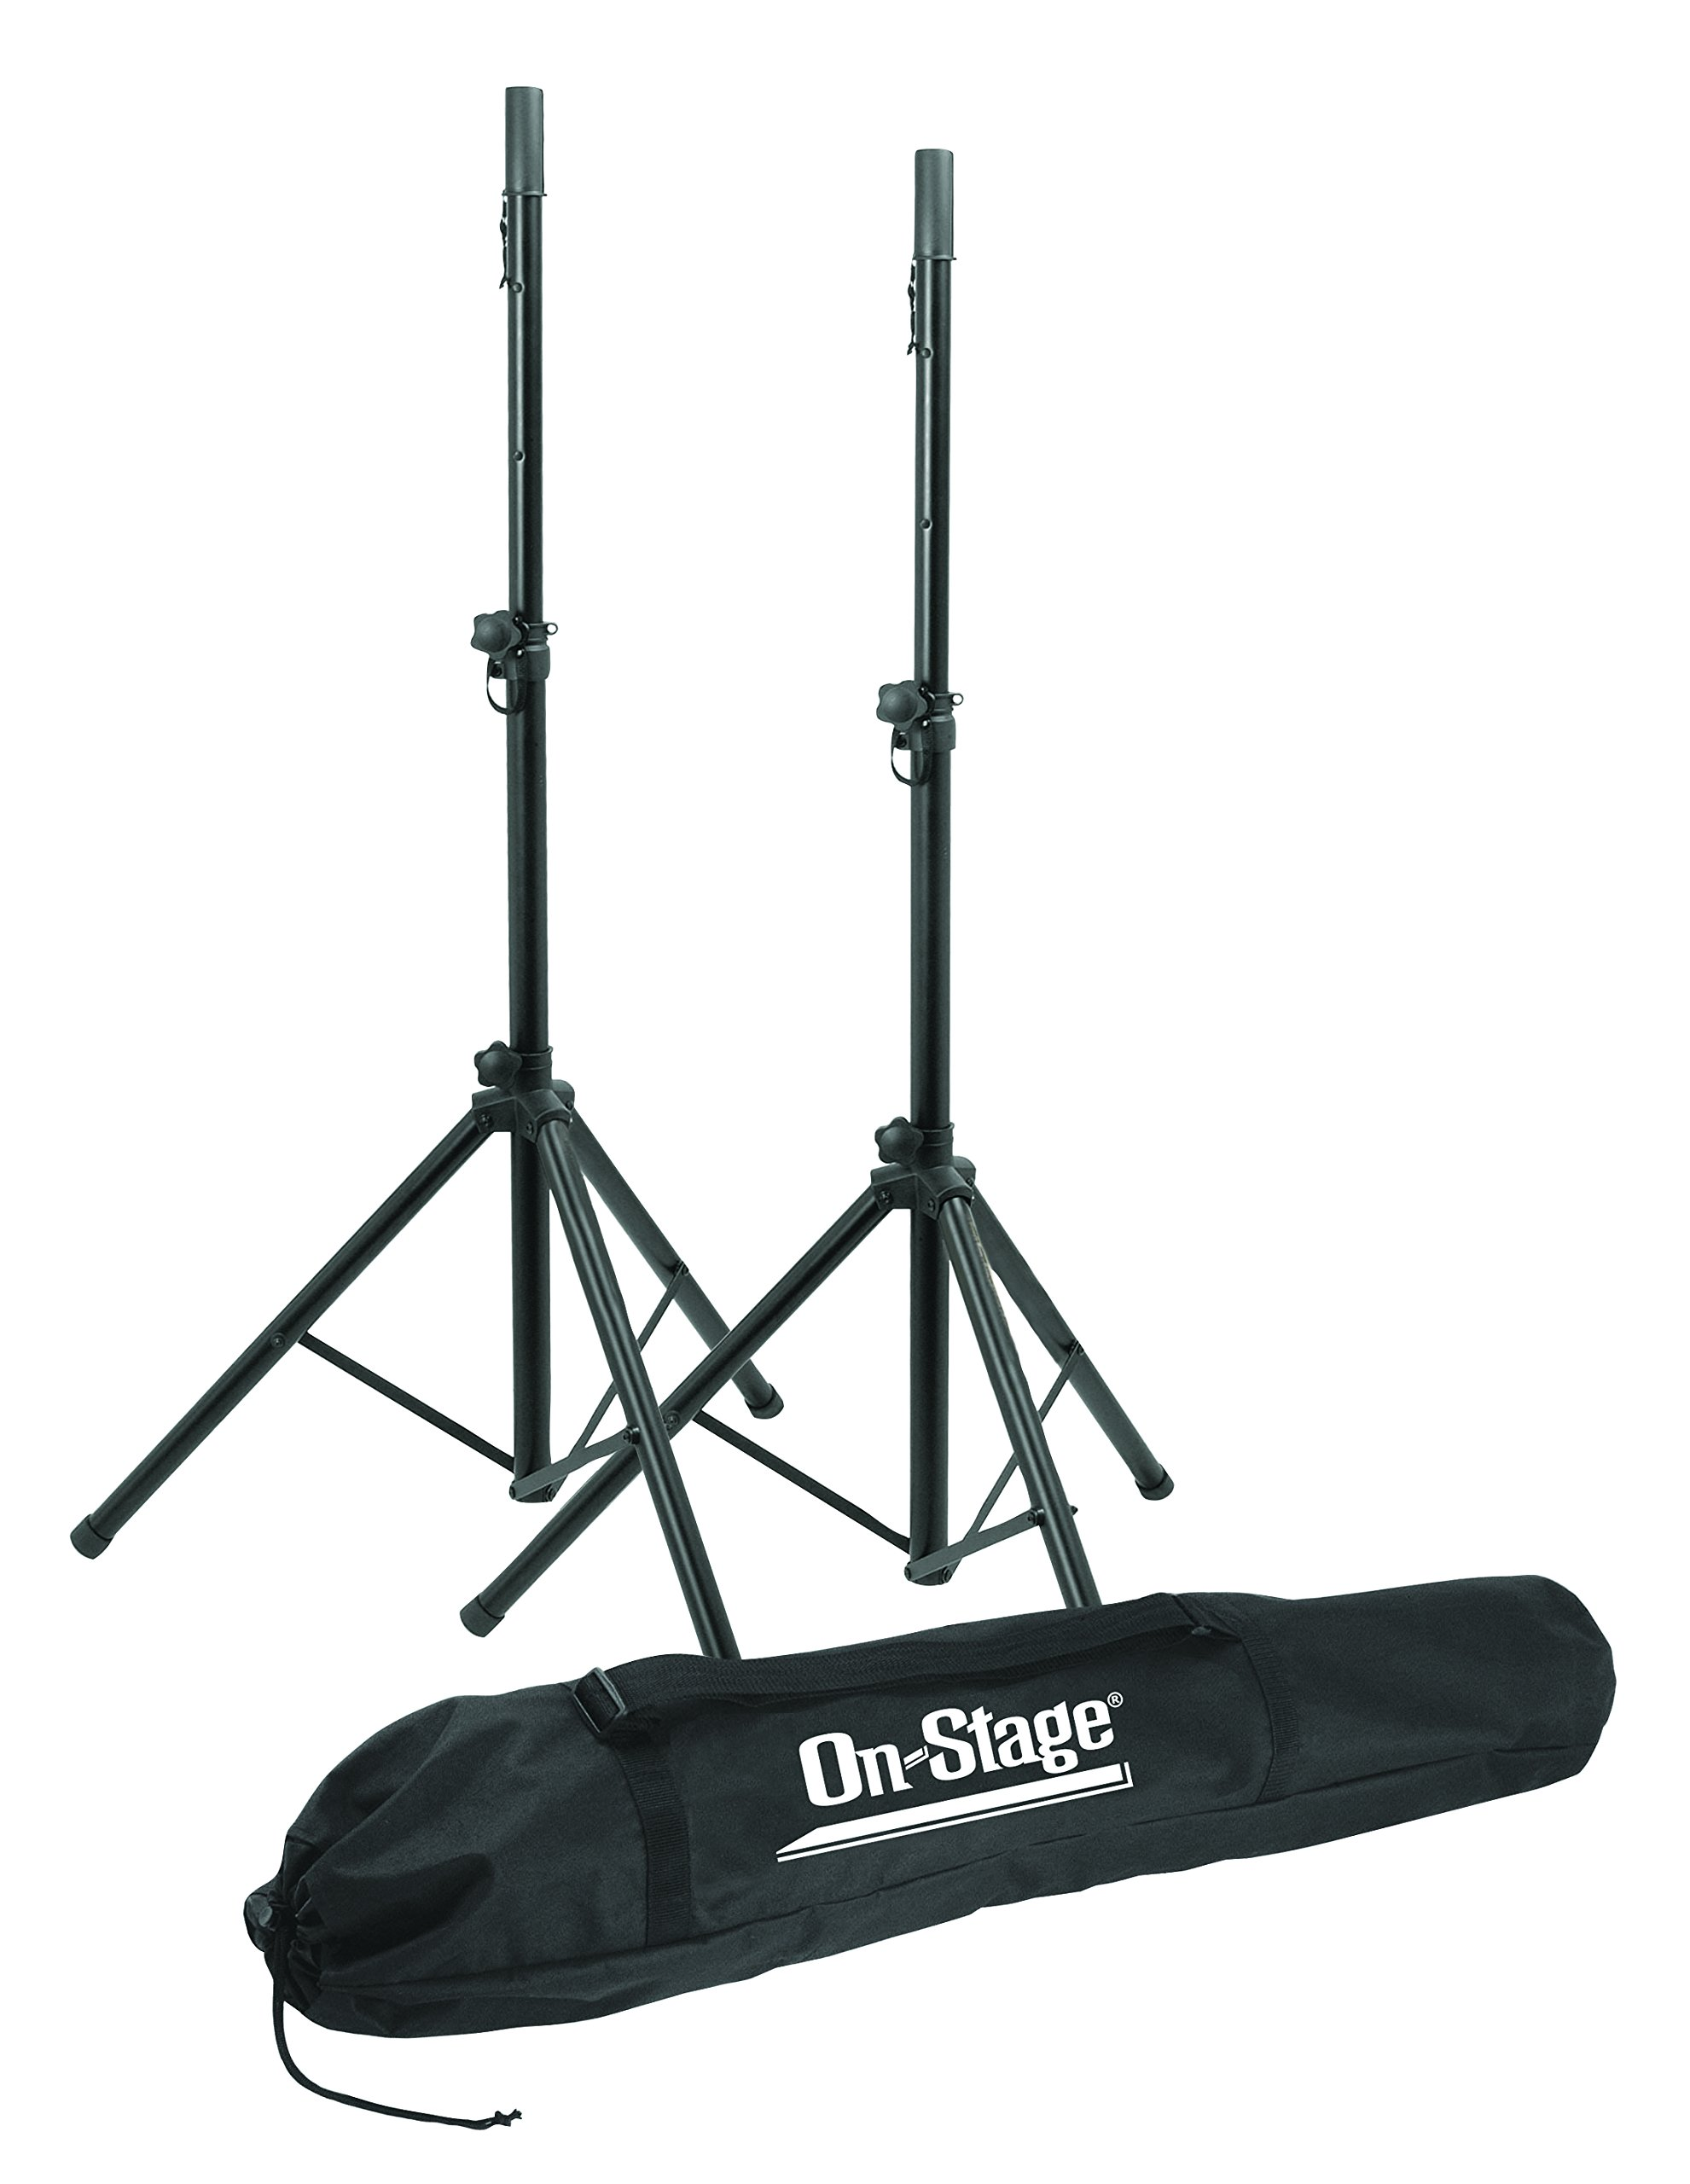 On Stage SSP7900 All Aluminum Speaker Stand Package with Bag